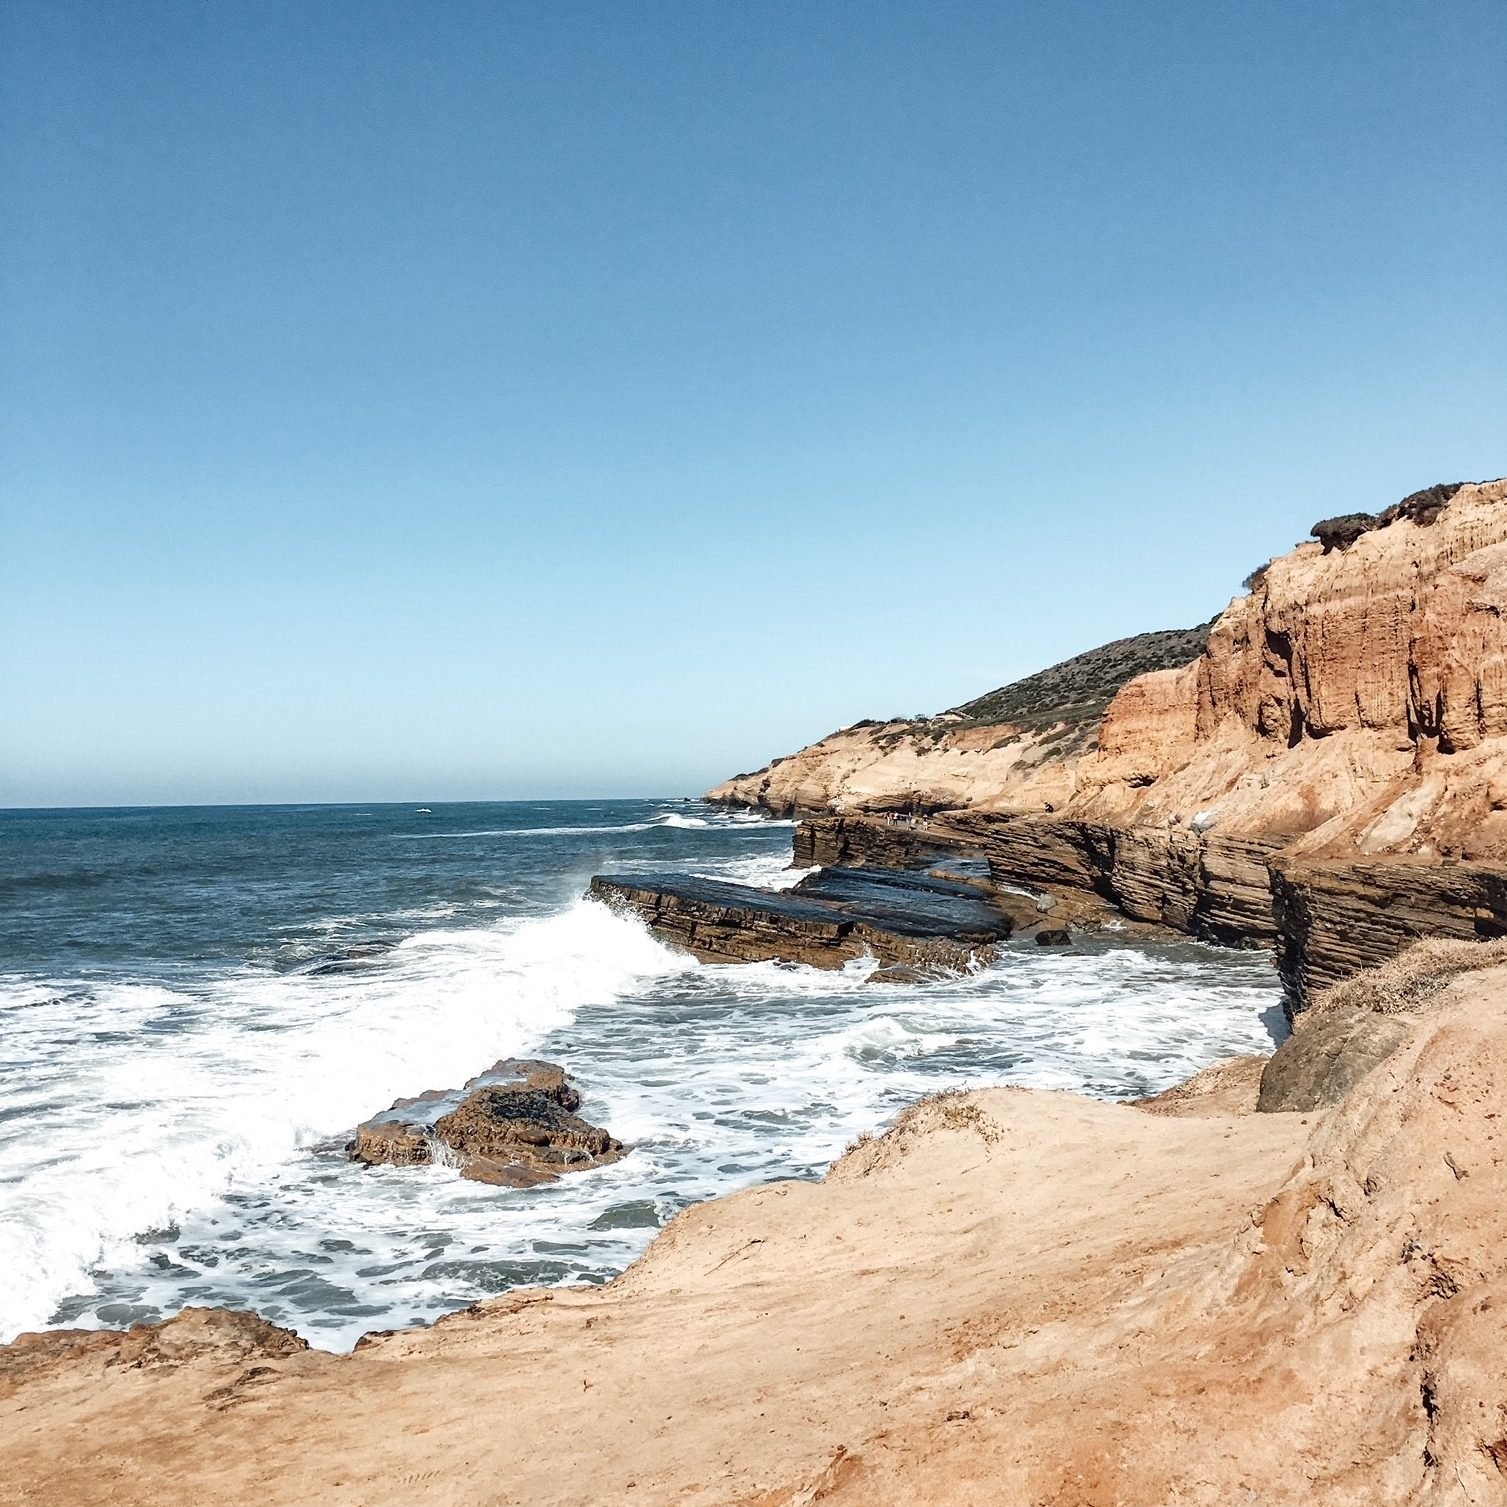 A girls' getaway to San Diego can't be all mimosas and beach lounging. Check out some of these coastal hikes.